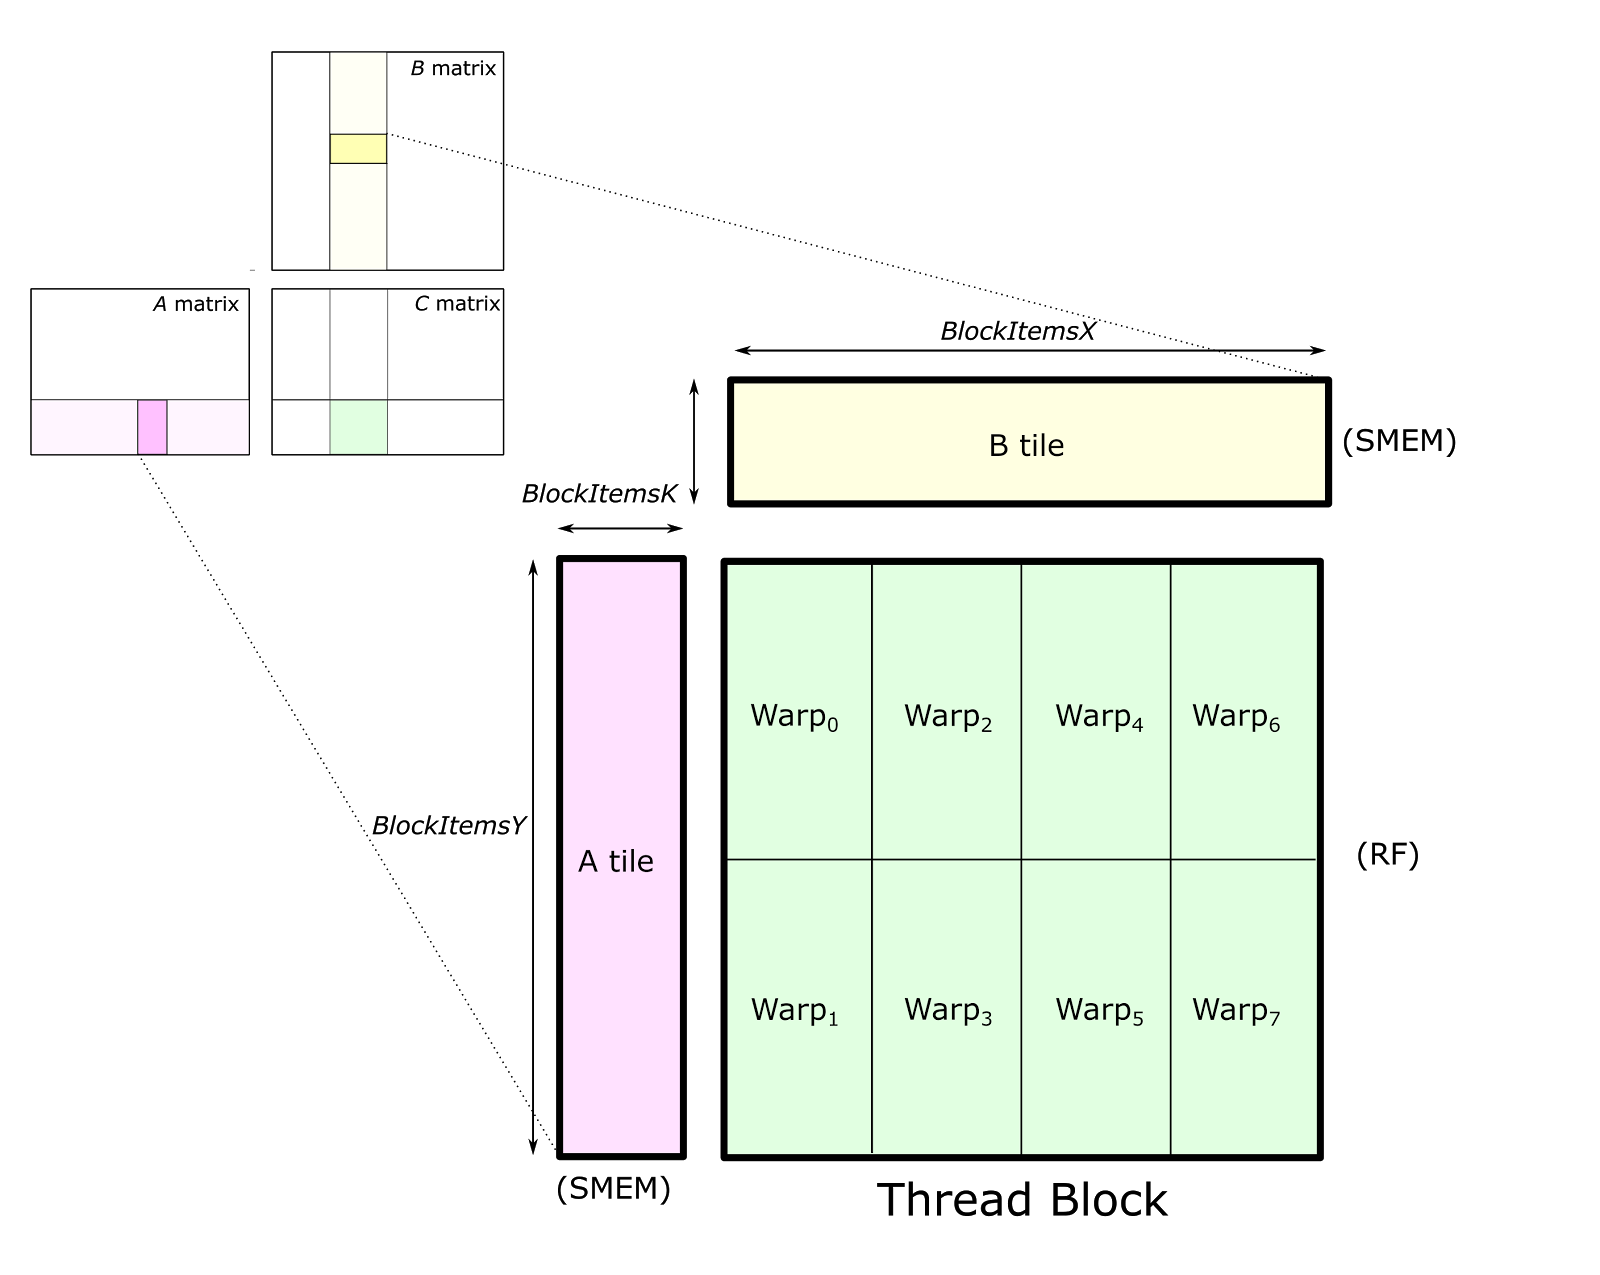 Figure 3. The thread block structure partitions the tile of C across several warps, with each warp storing a non-overlapping 2D tile. Each warp stores its accumulator elements in registers. Tiles of A and B are stored in shared memory accessible to all of the warps in the thread block.